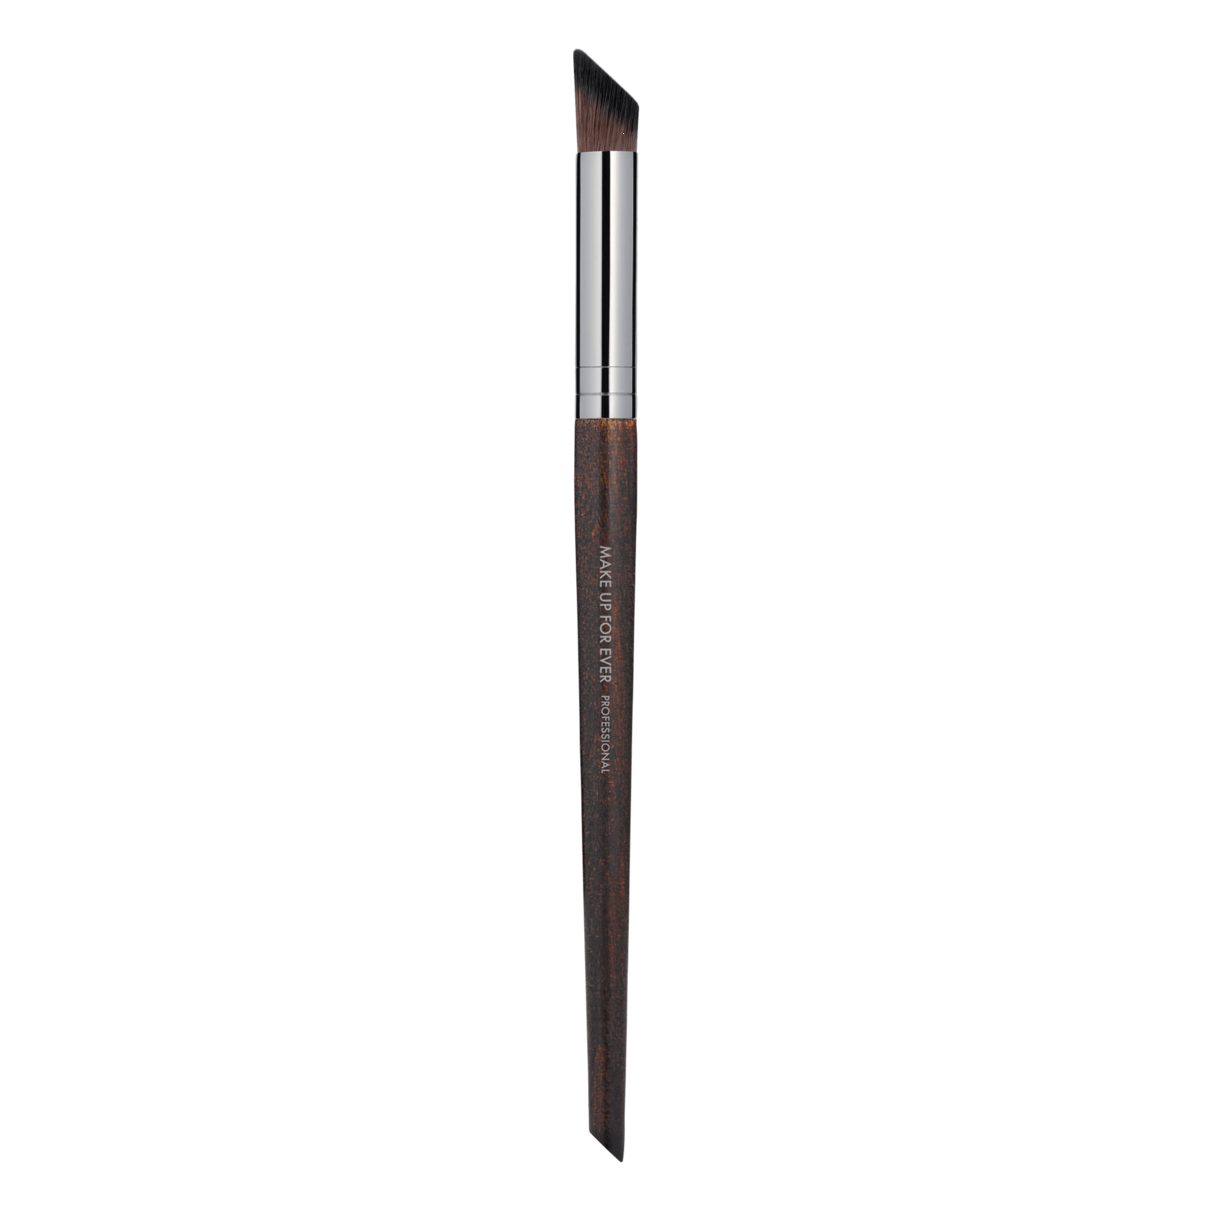 MAKE UP FOR EVER 234 Angled Eyeshadow Shader Brush